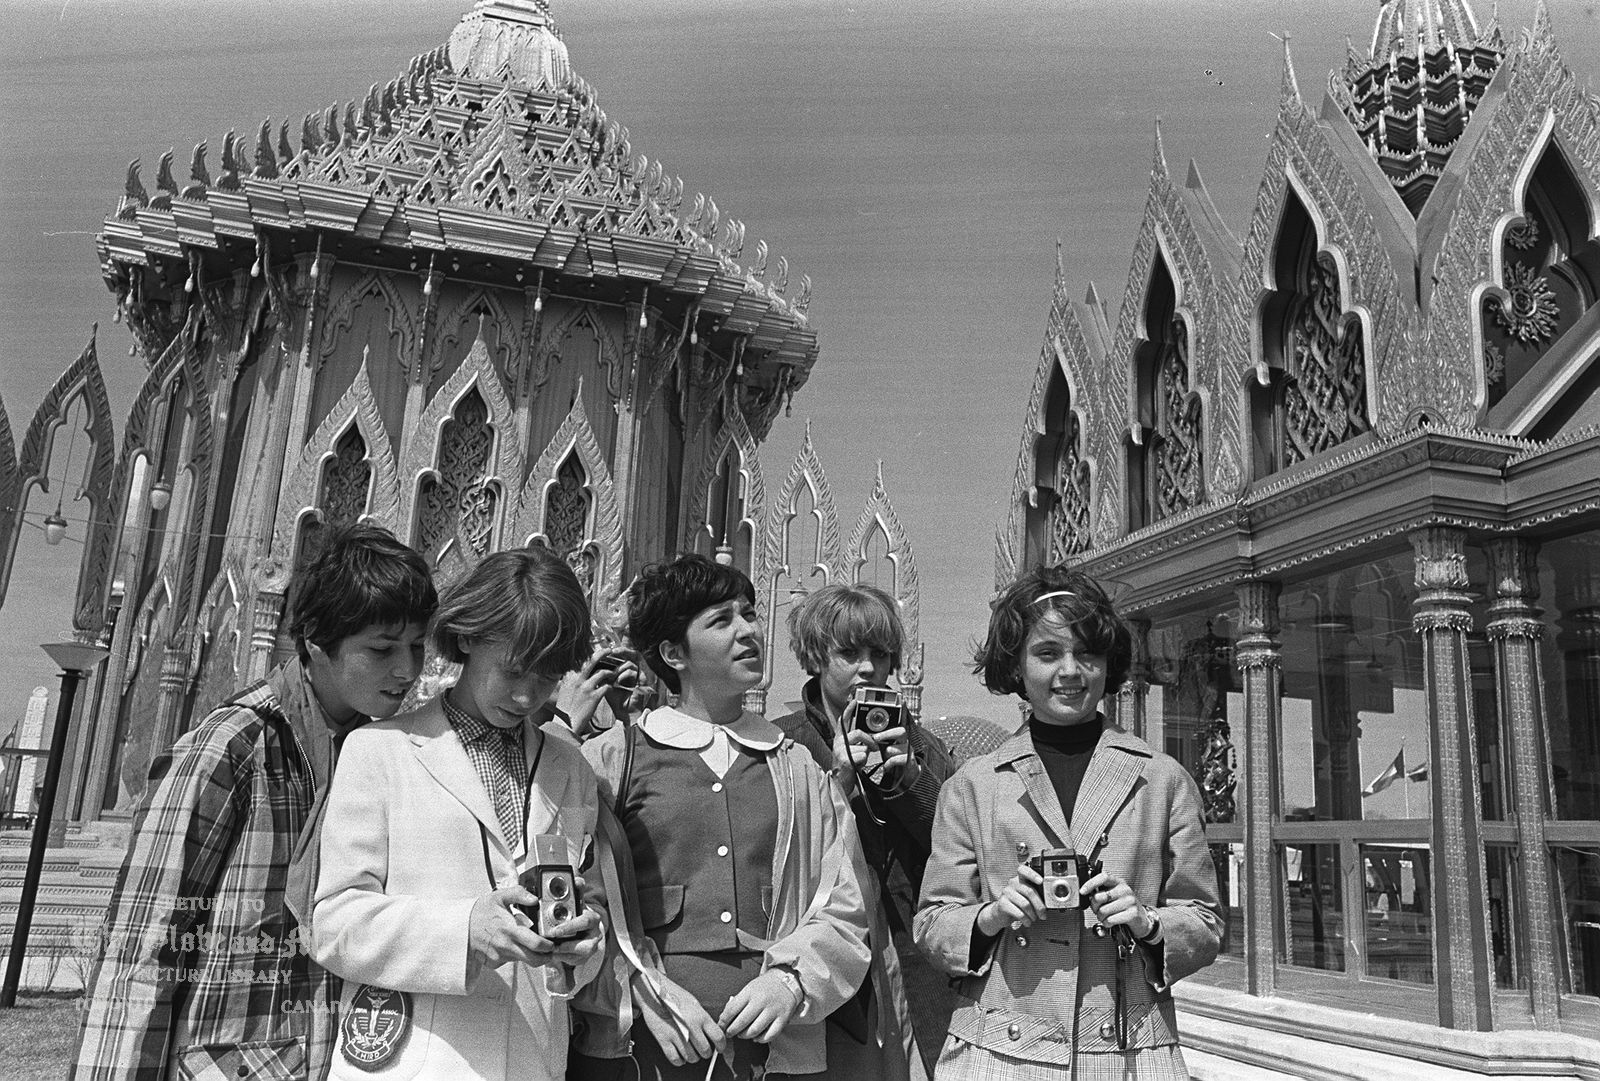 April 30, 1967. The World's Fair, Expo 67, opens in Montreal to great acclaim. Students from Toronto take in all the sights and snap the odd photo or two. Photo by John McNeill / The Globe and Mail (Neg. 67121-12)